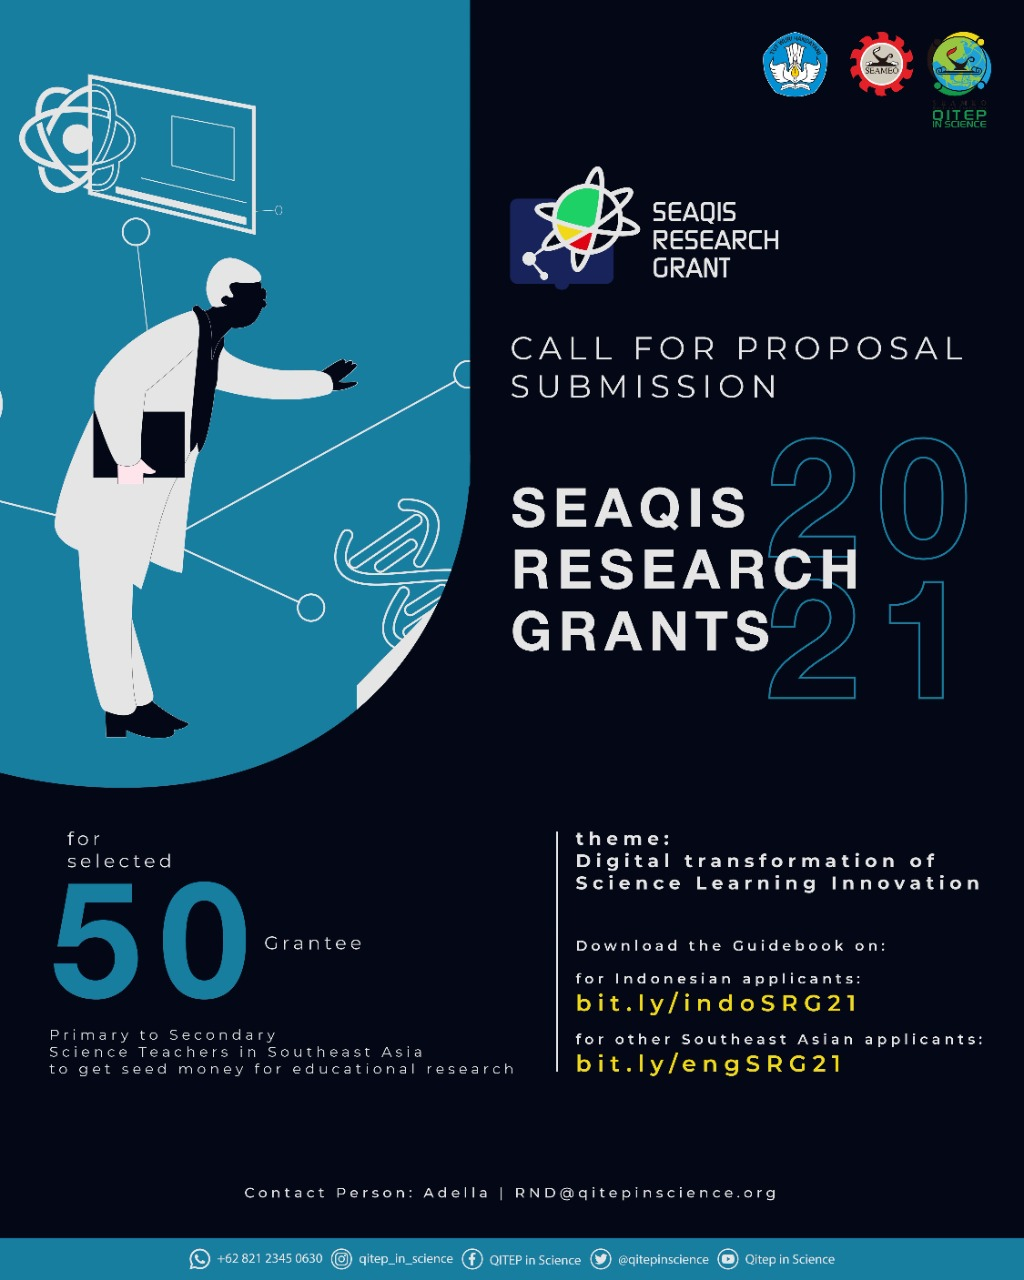 SEAQIS RESEARCH GRANT 2021 CALL FOR PROPOSAL SUBMISSION